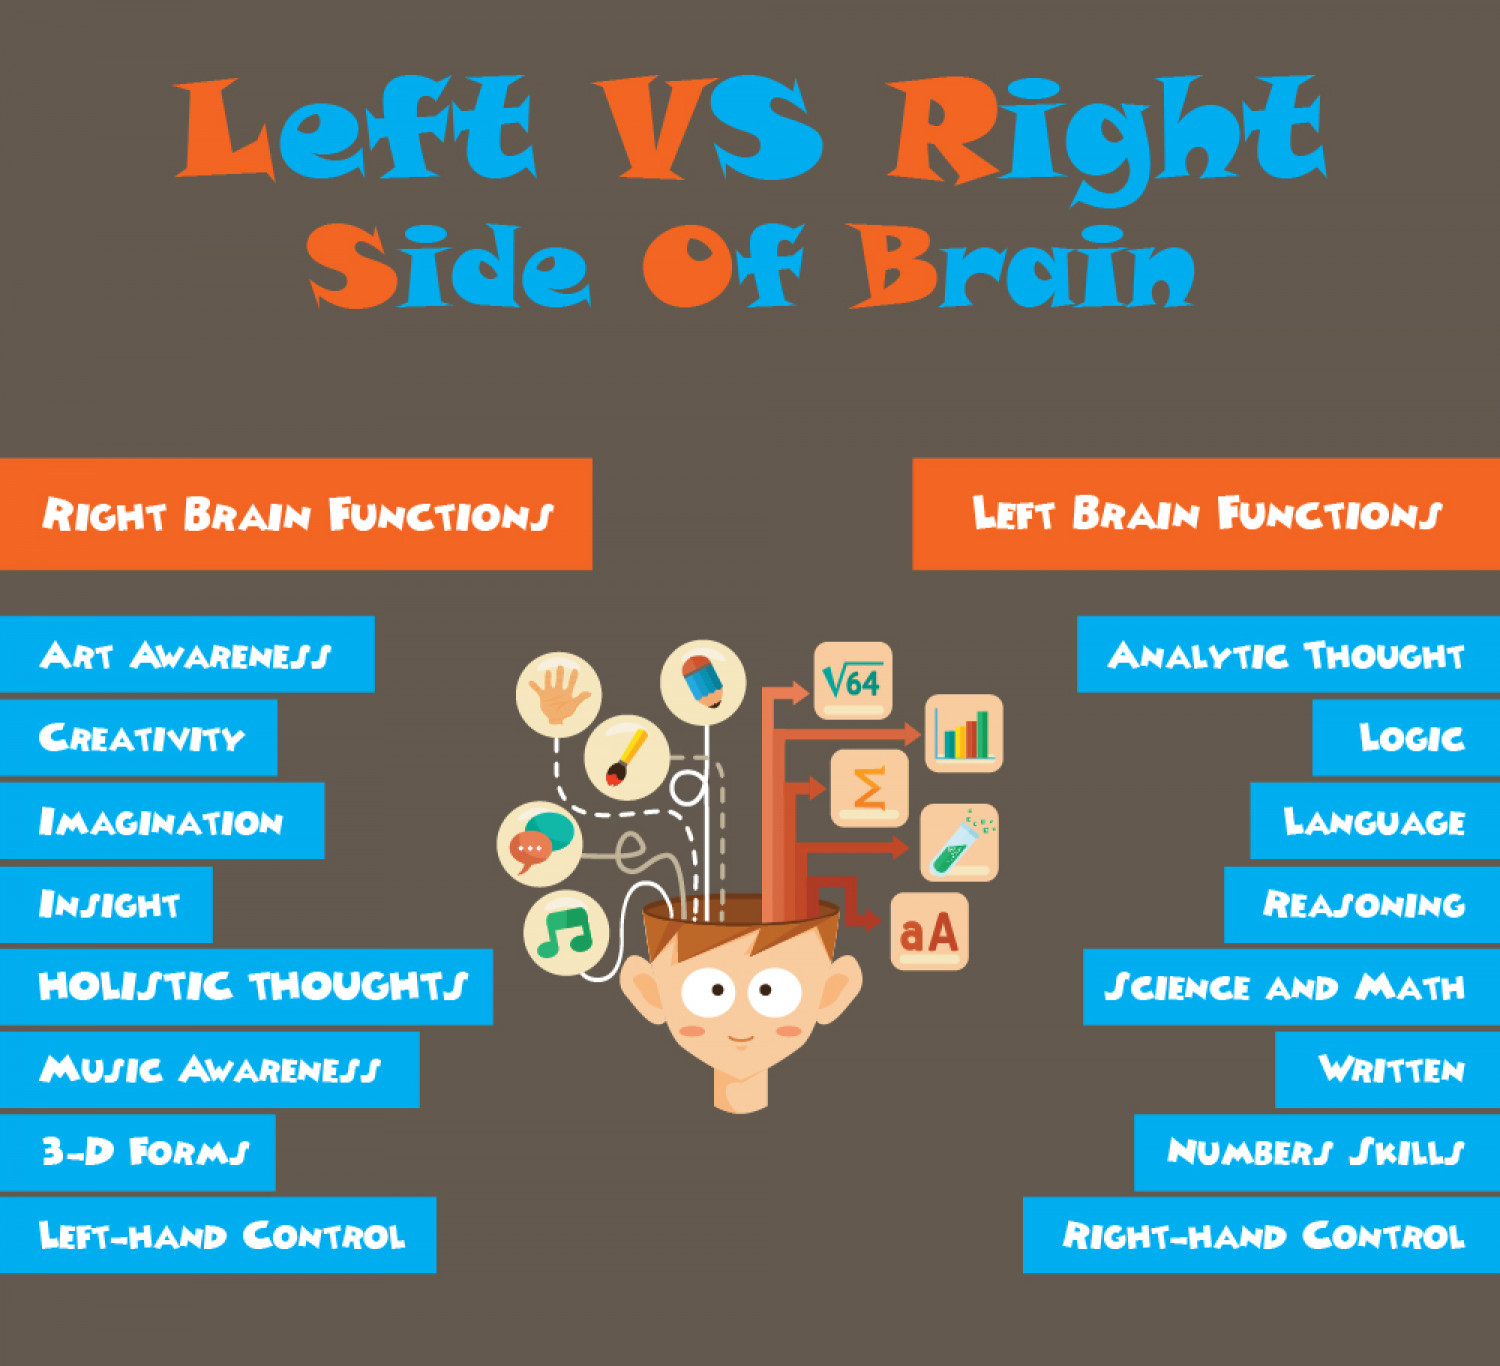 Left Brain vs. Right Brain: Differences between Characteristics and Function